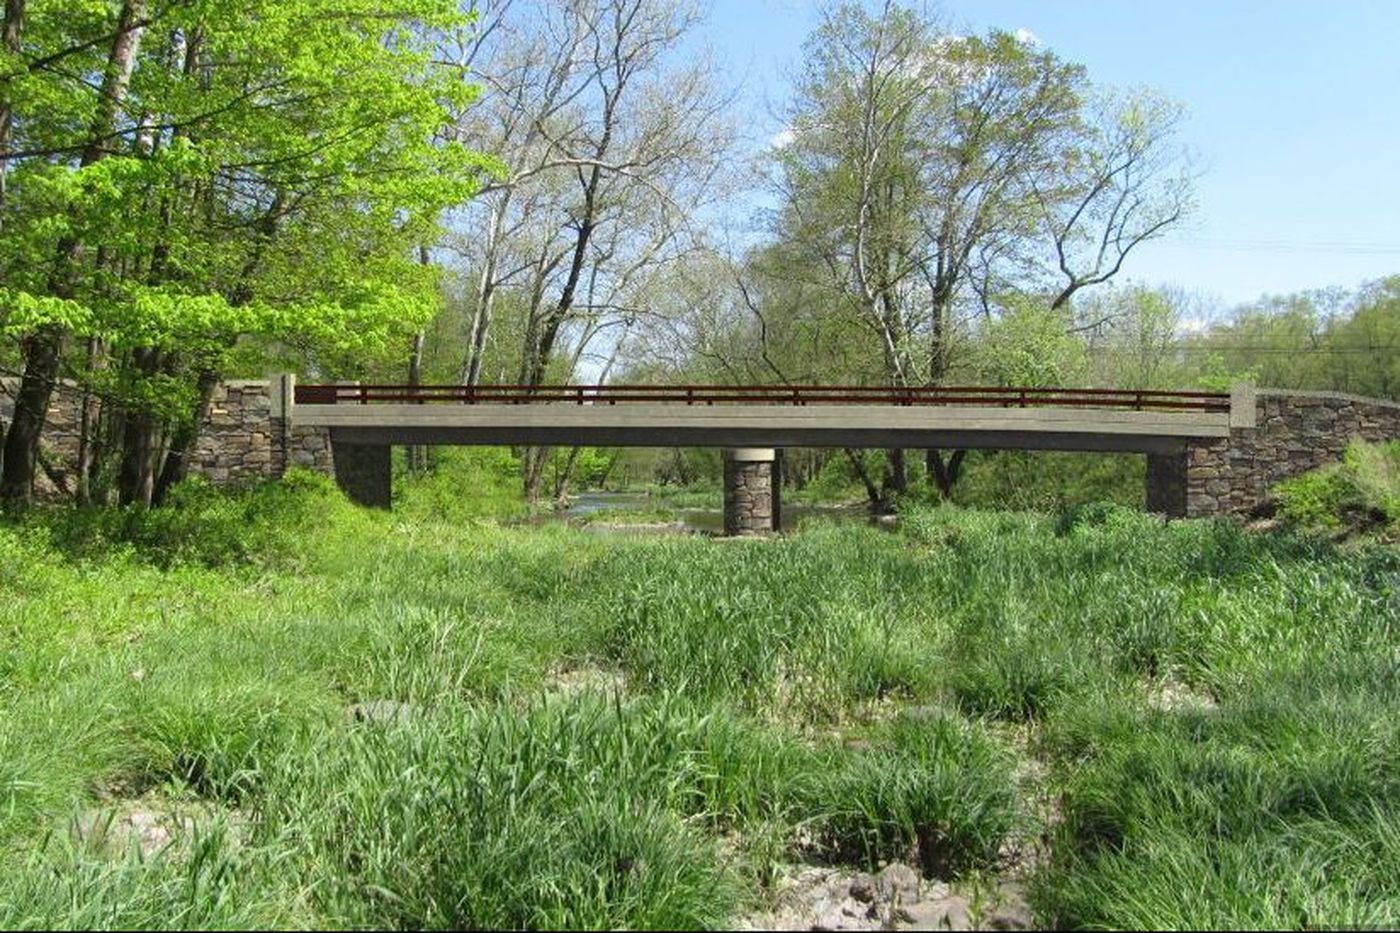 Group sues to block replacement of 206-year-old stone bridge in Bucks County